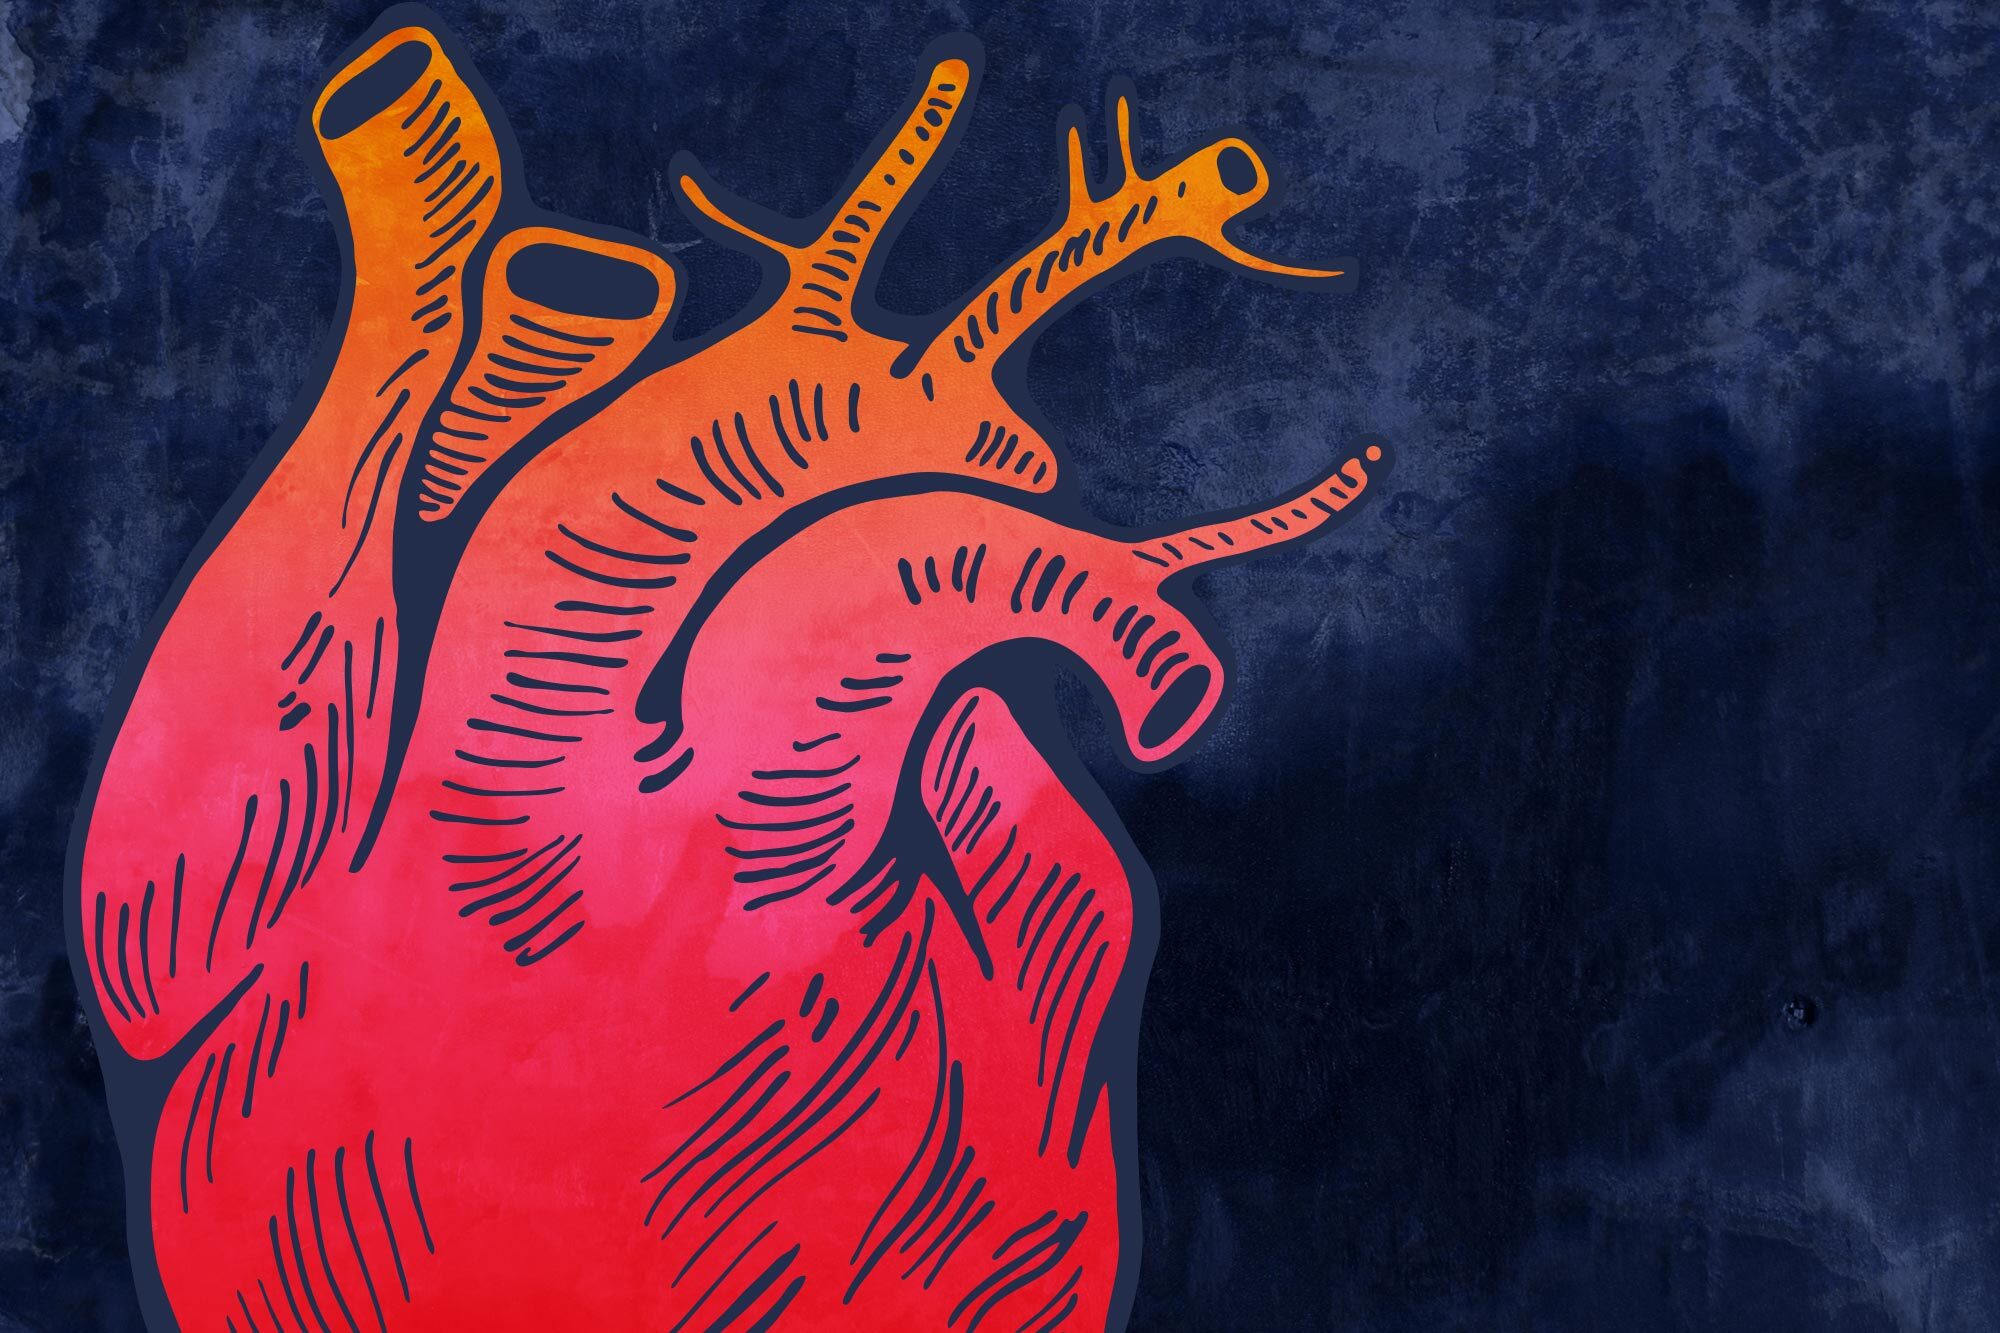 Heart Attacks, Heart Failure, Stroke: COVID-19's Dangerous Cardio Complications